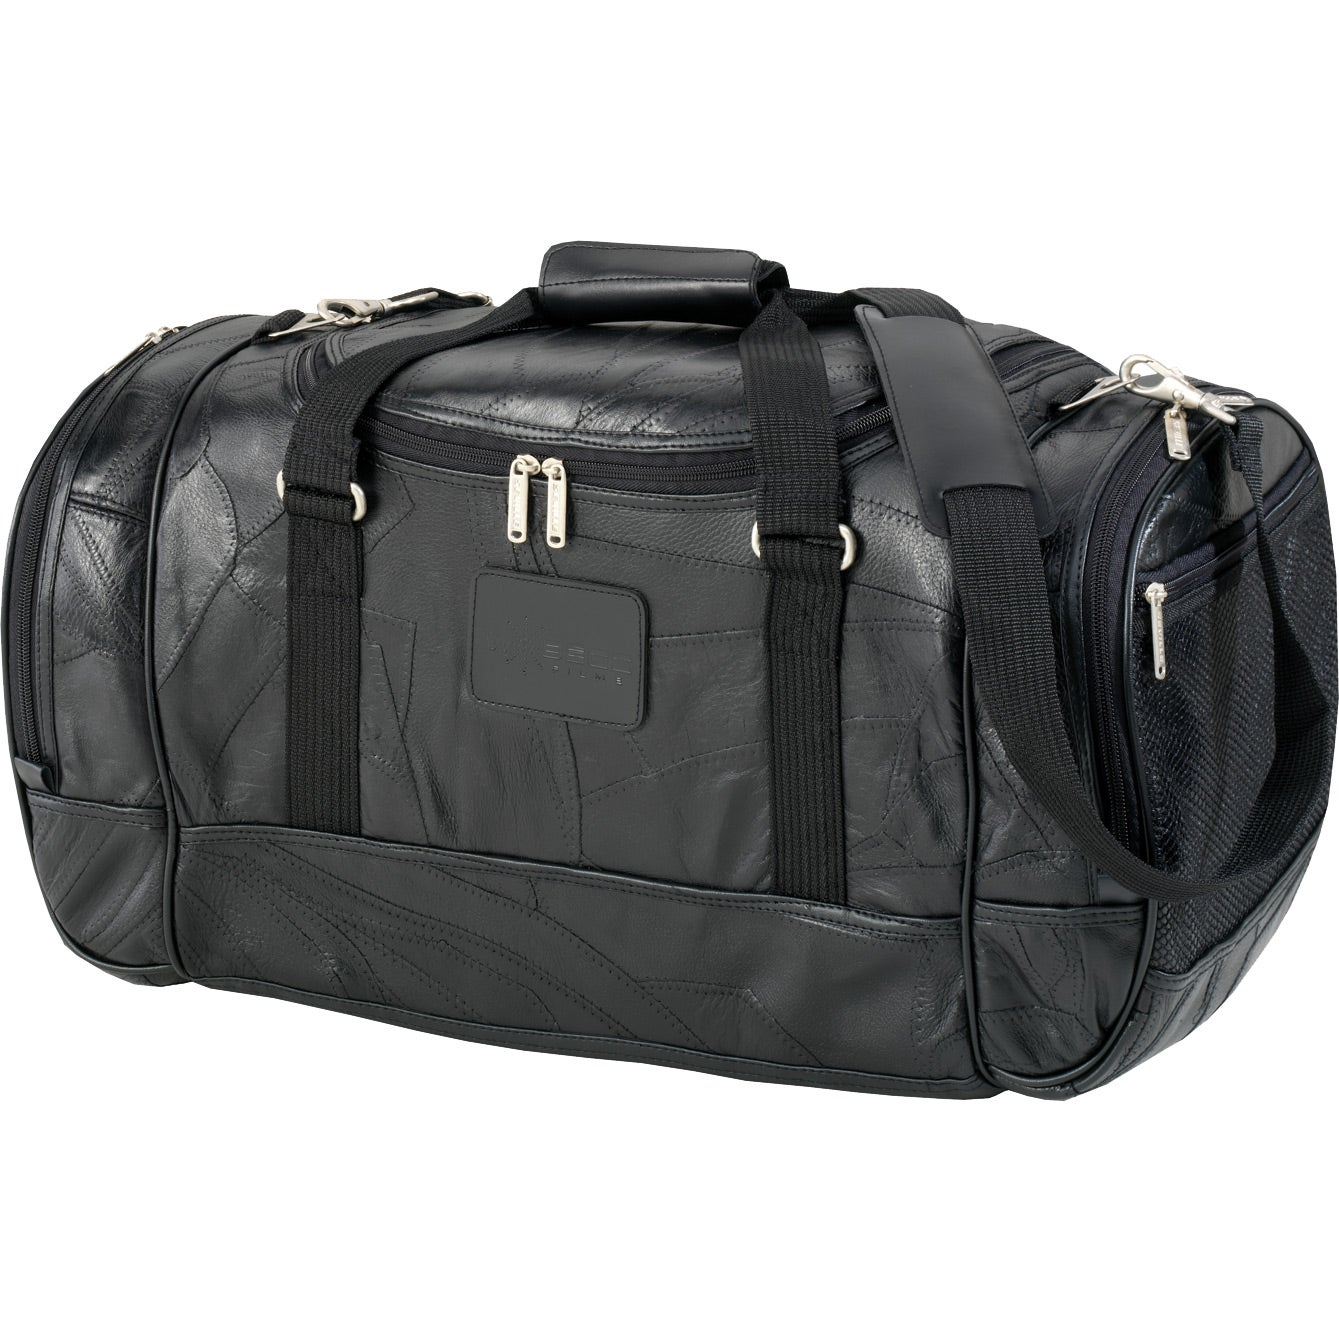 Promotional 22 Quot Deluxe Leather Travel Duffel With Custom